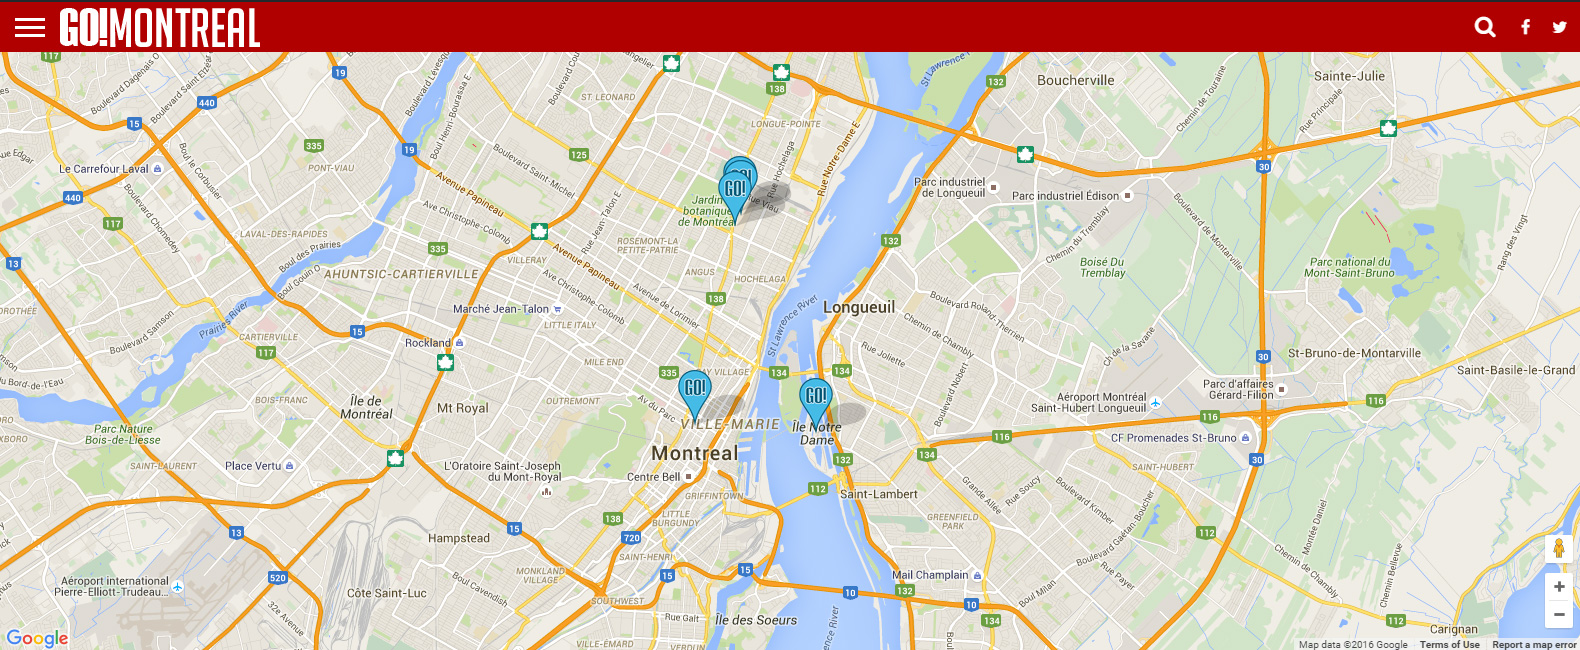 Montreal S Attractions Map Go Montreal Tourism Guide